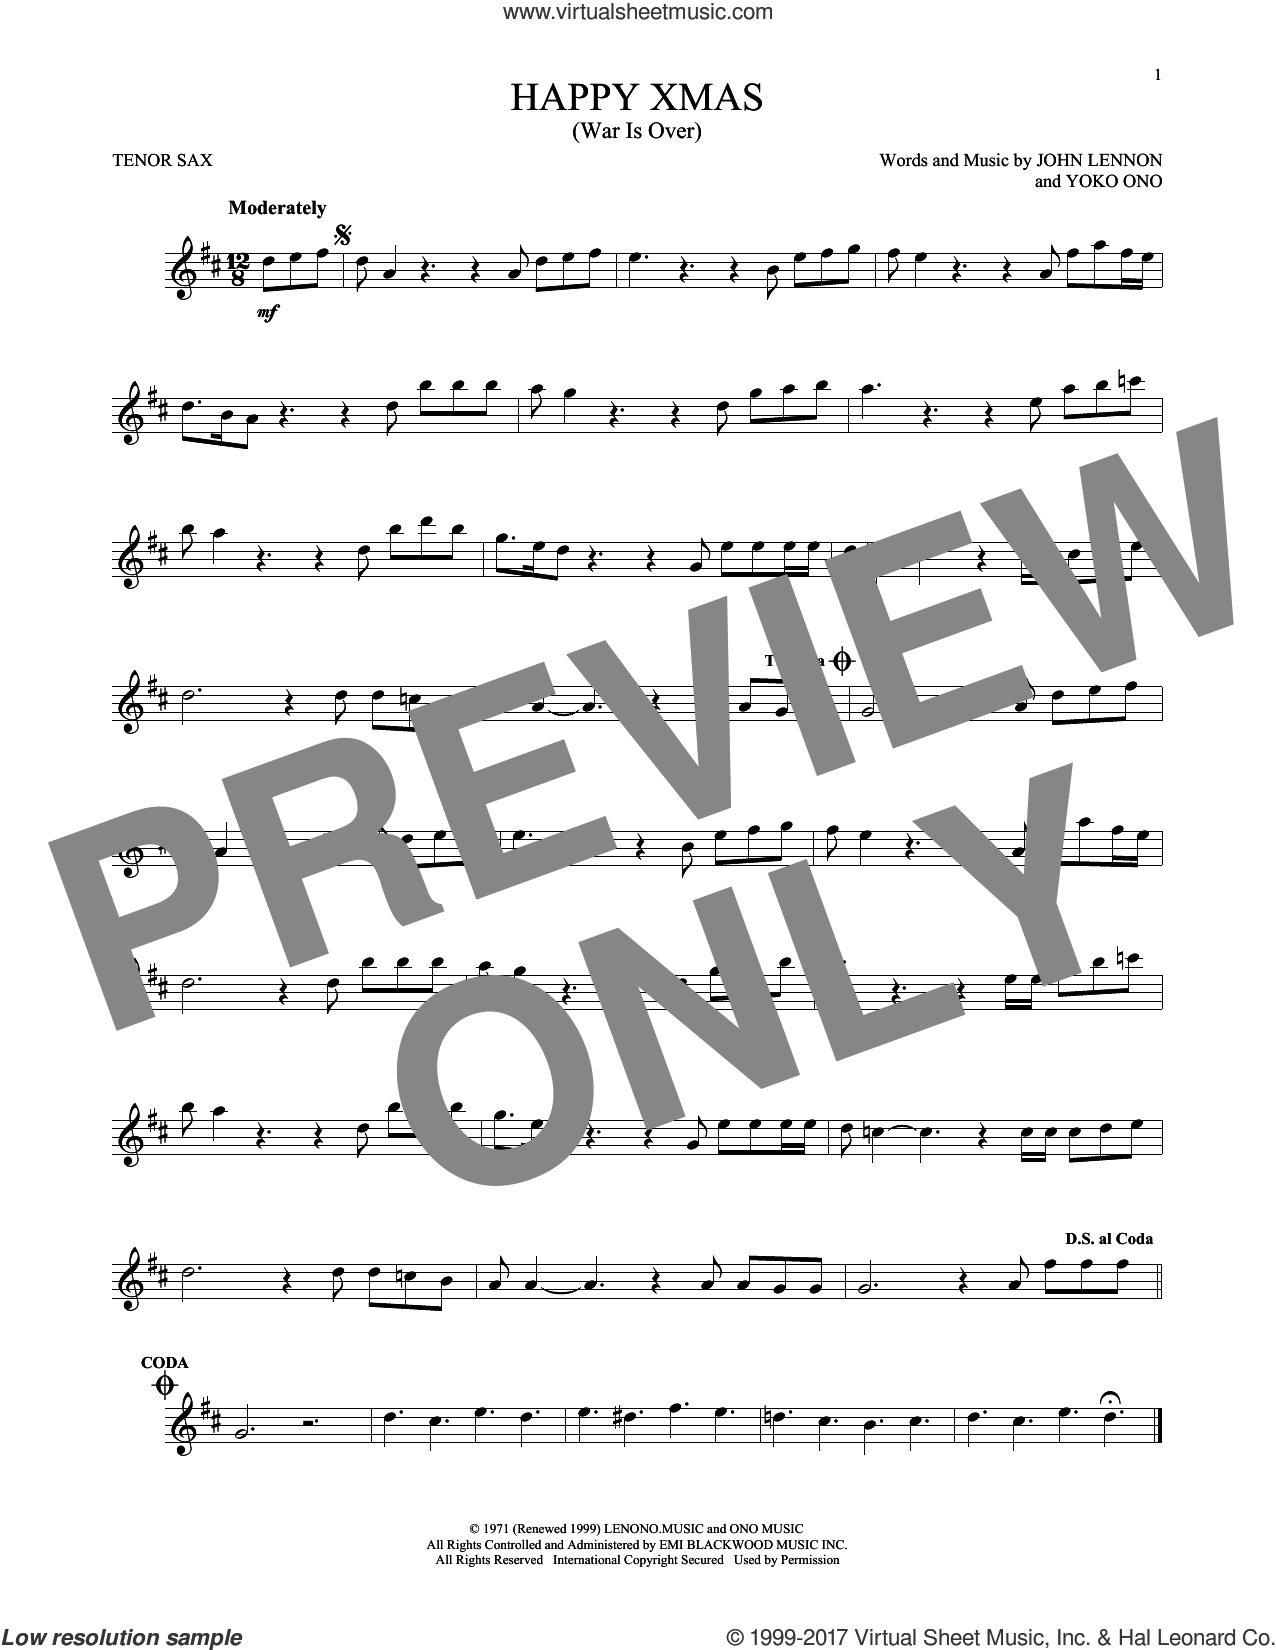 Happy Xmas (War Is Over) sheet music for tenor saxophone solo by John Lennon and Yoko Ono, intermediate skill level